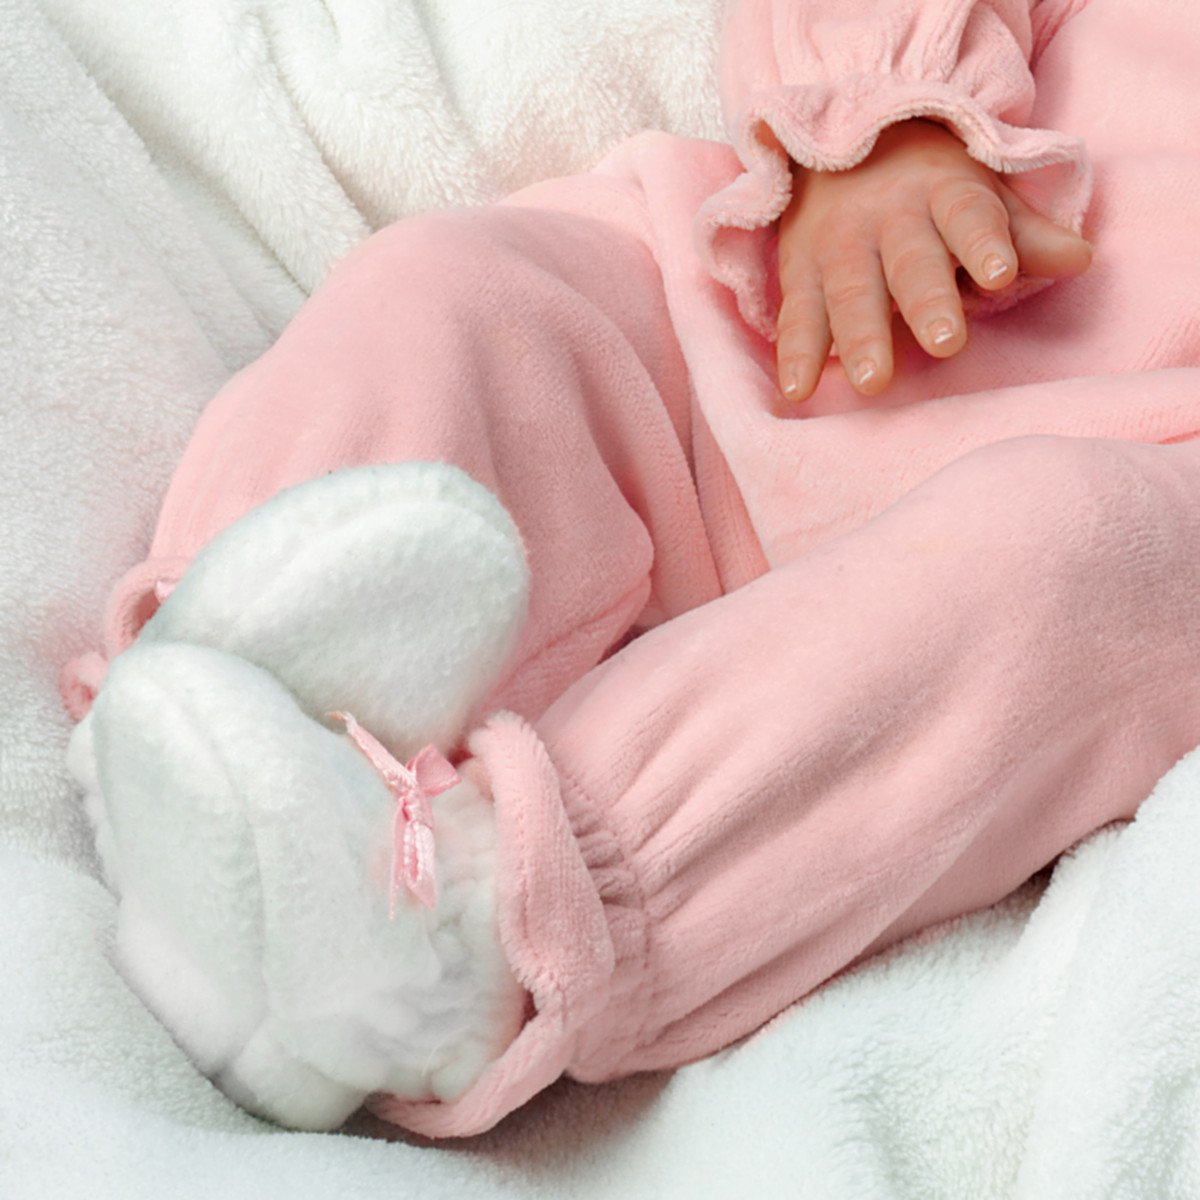 My Sweet Little Kitten So Truly Real Lifelike Baby Girl Doll By Mayra Garza by The Bradford Exchange Katie